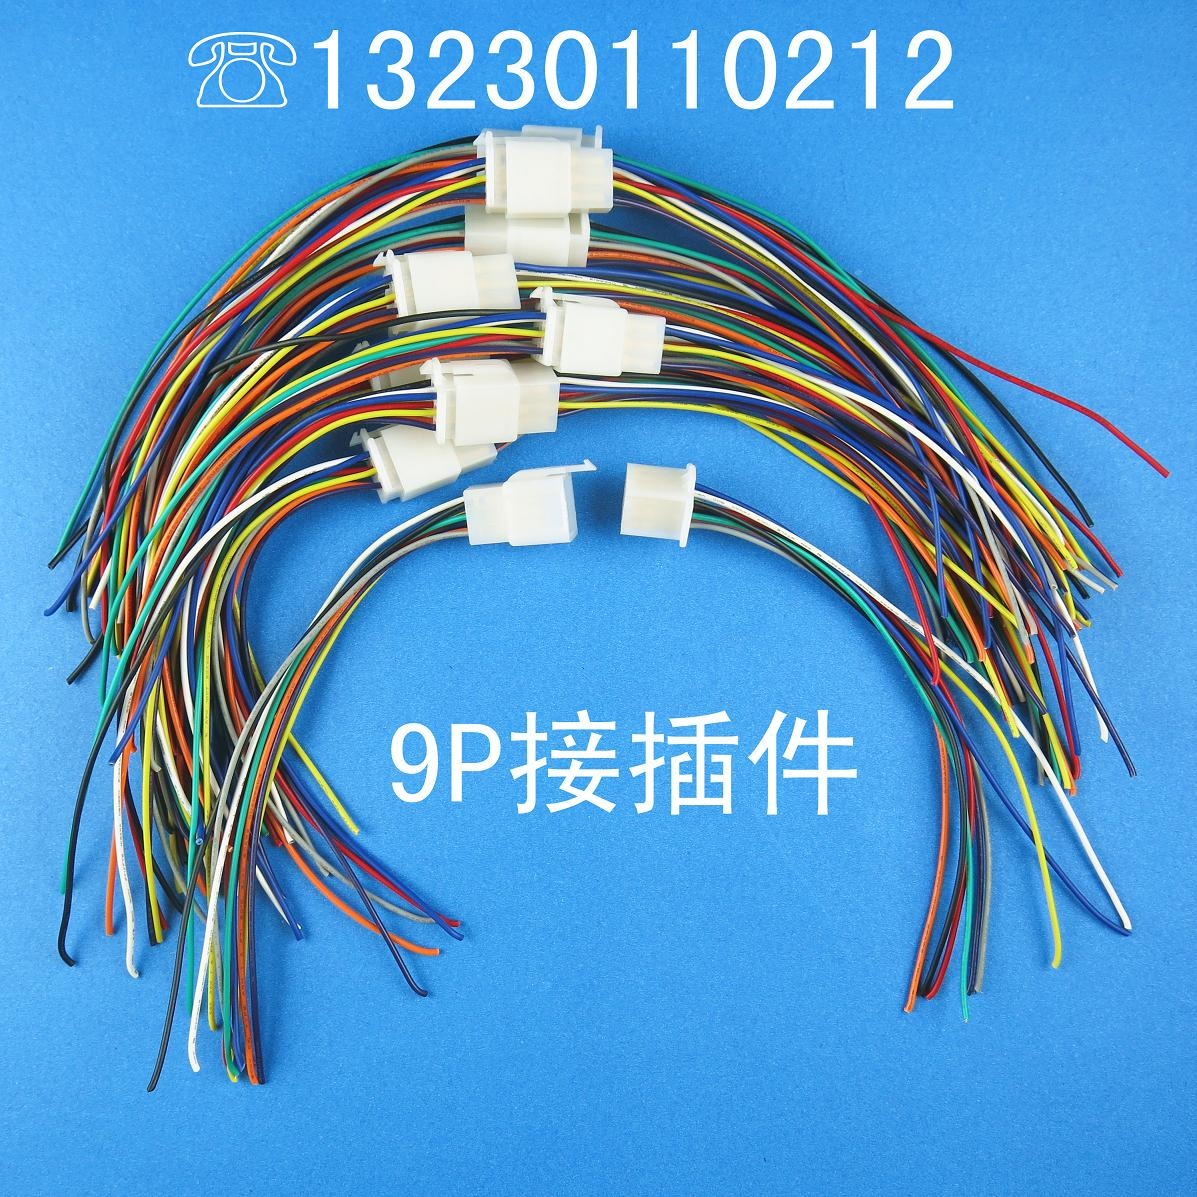 wire harness equipment reviews online shopping wire harness 2 8 cable electronic equipment terminal 61076 pieces wire harness connector cable 9p plug